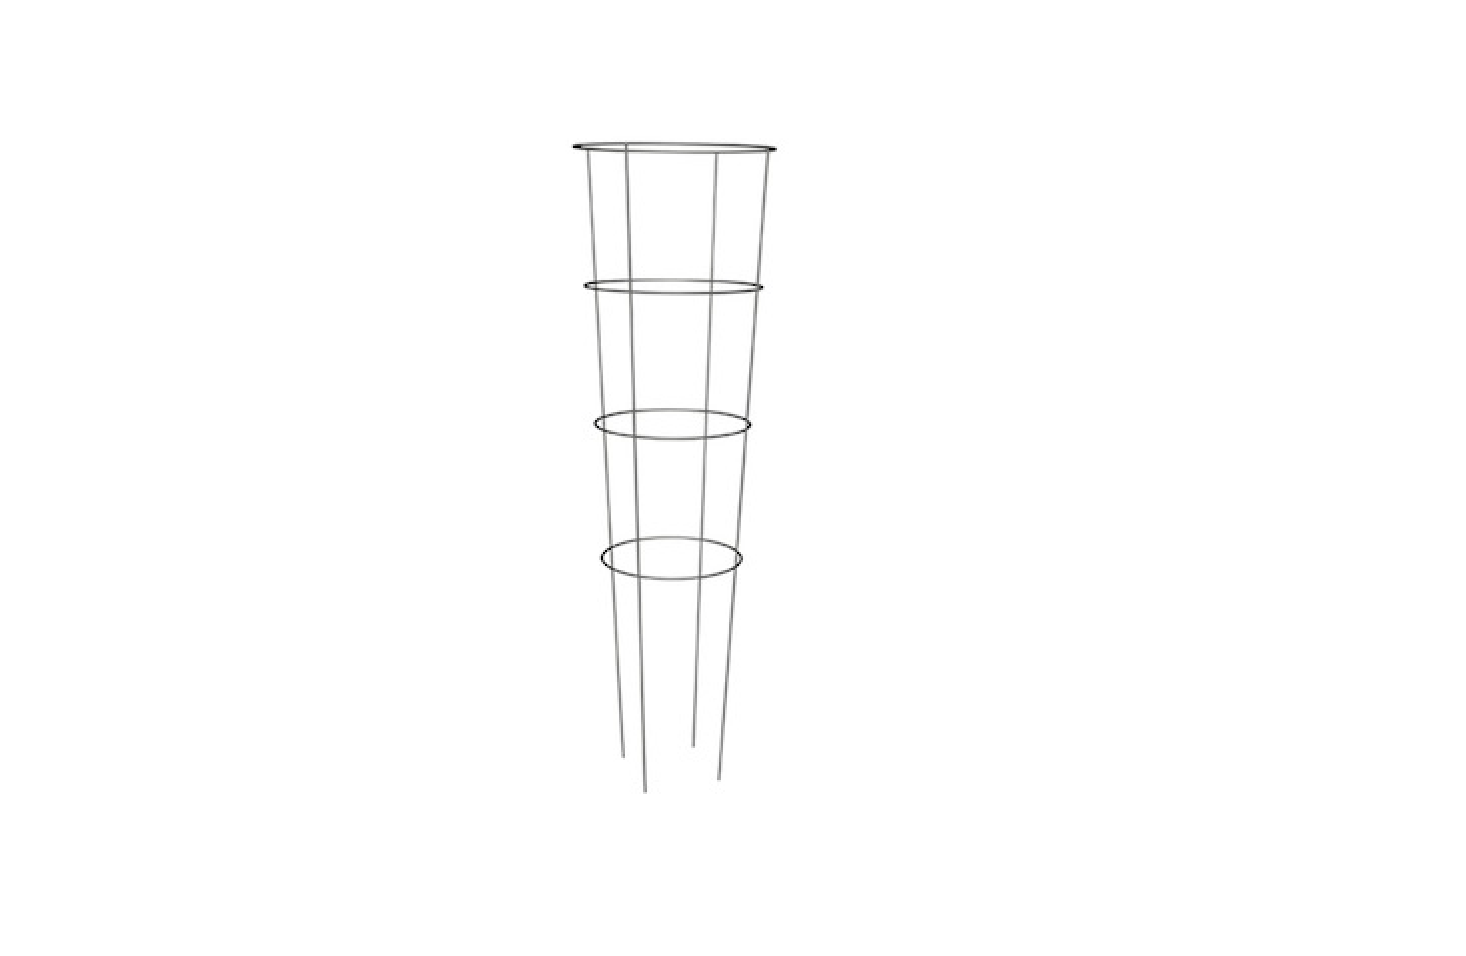 A 54-inch galvanized wire framePanacea Heavy-Duty Tomato Cage has a tapered silhouette, with a top ring measuring  inches in diameter; $4.49 from Southern States.